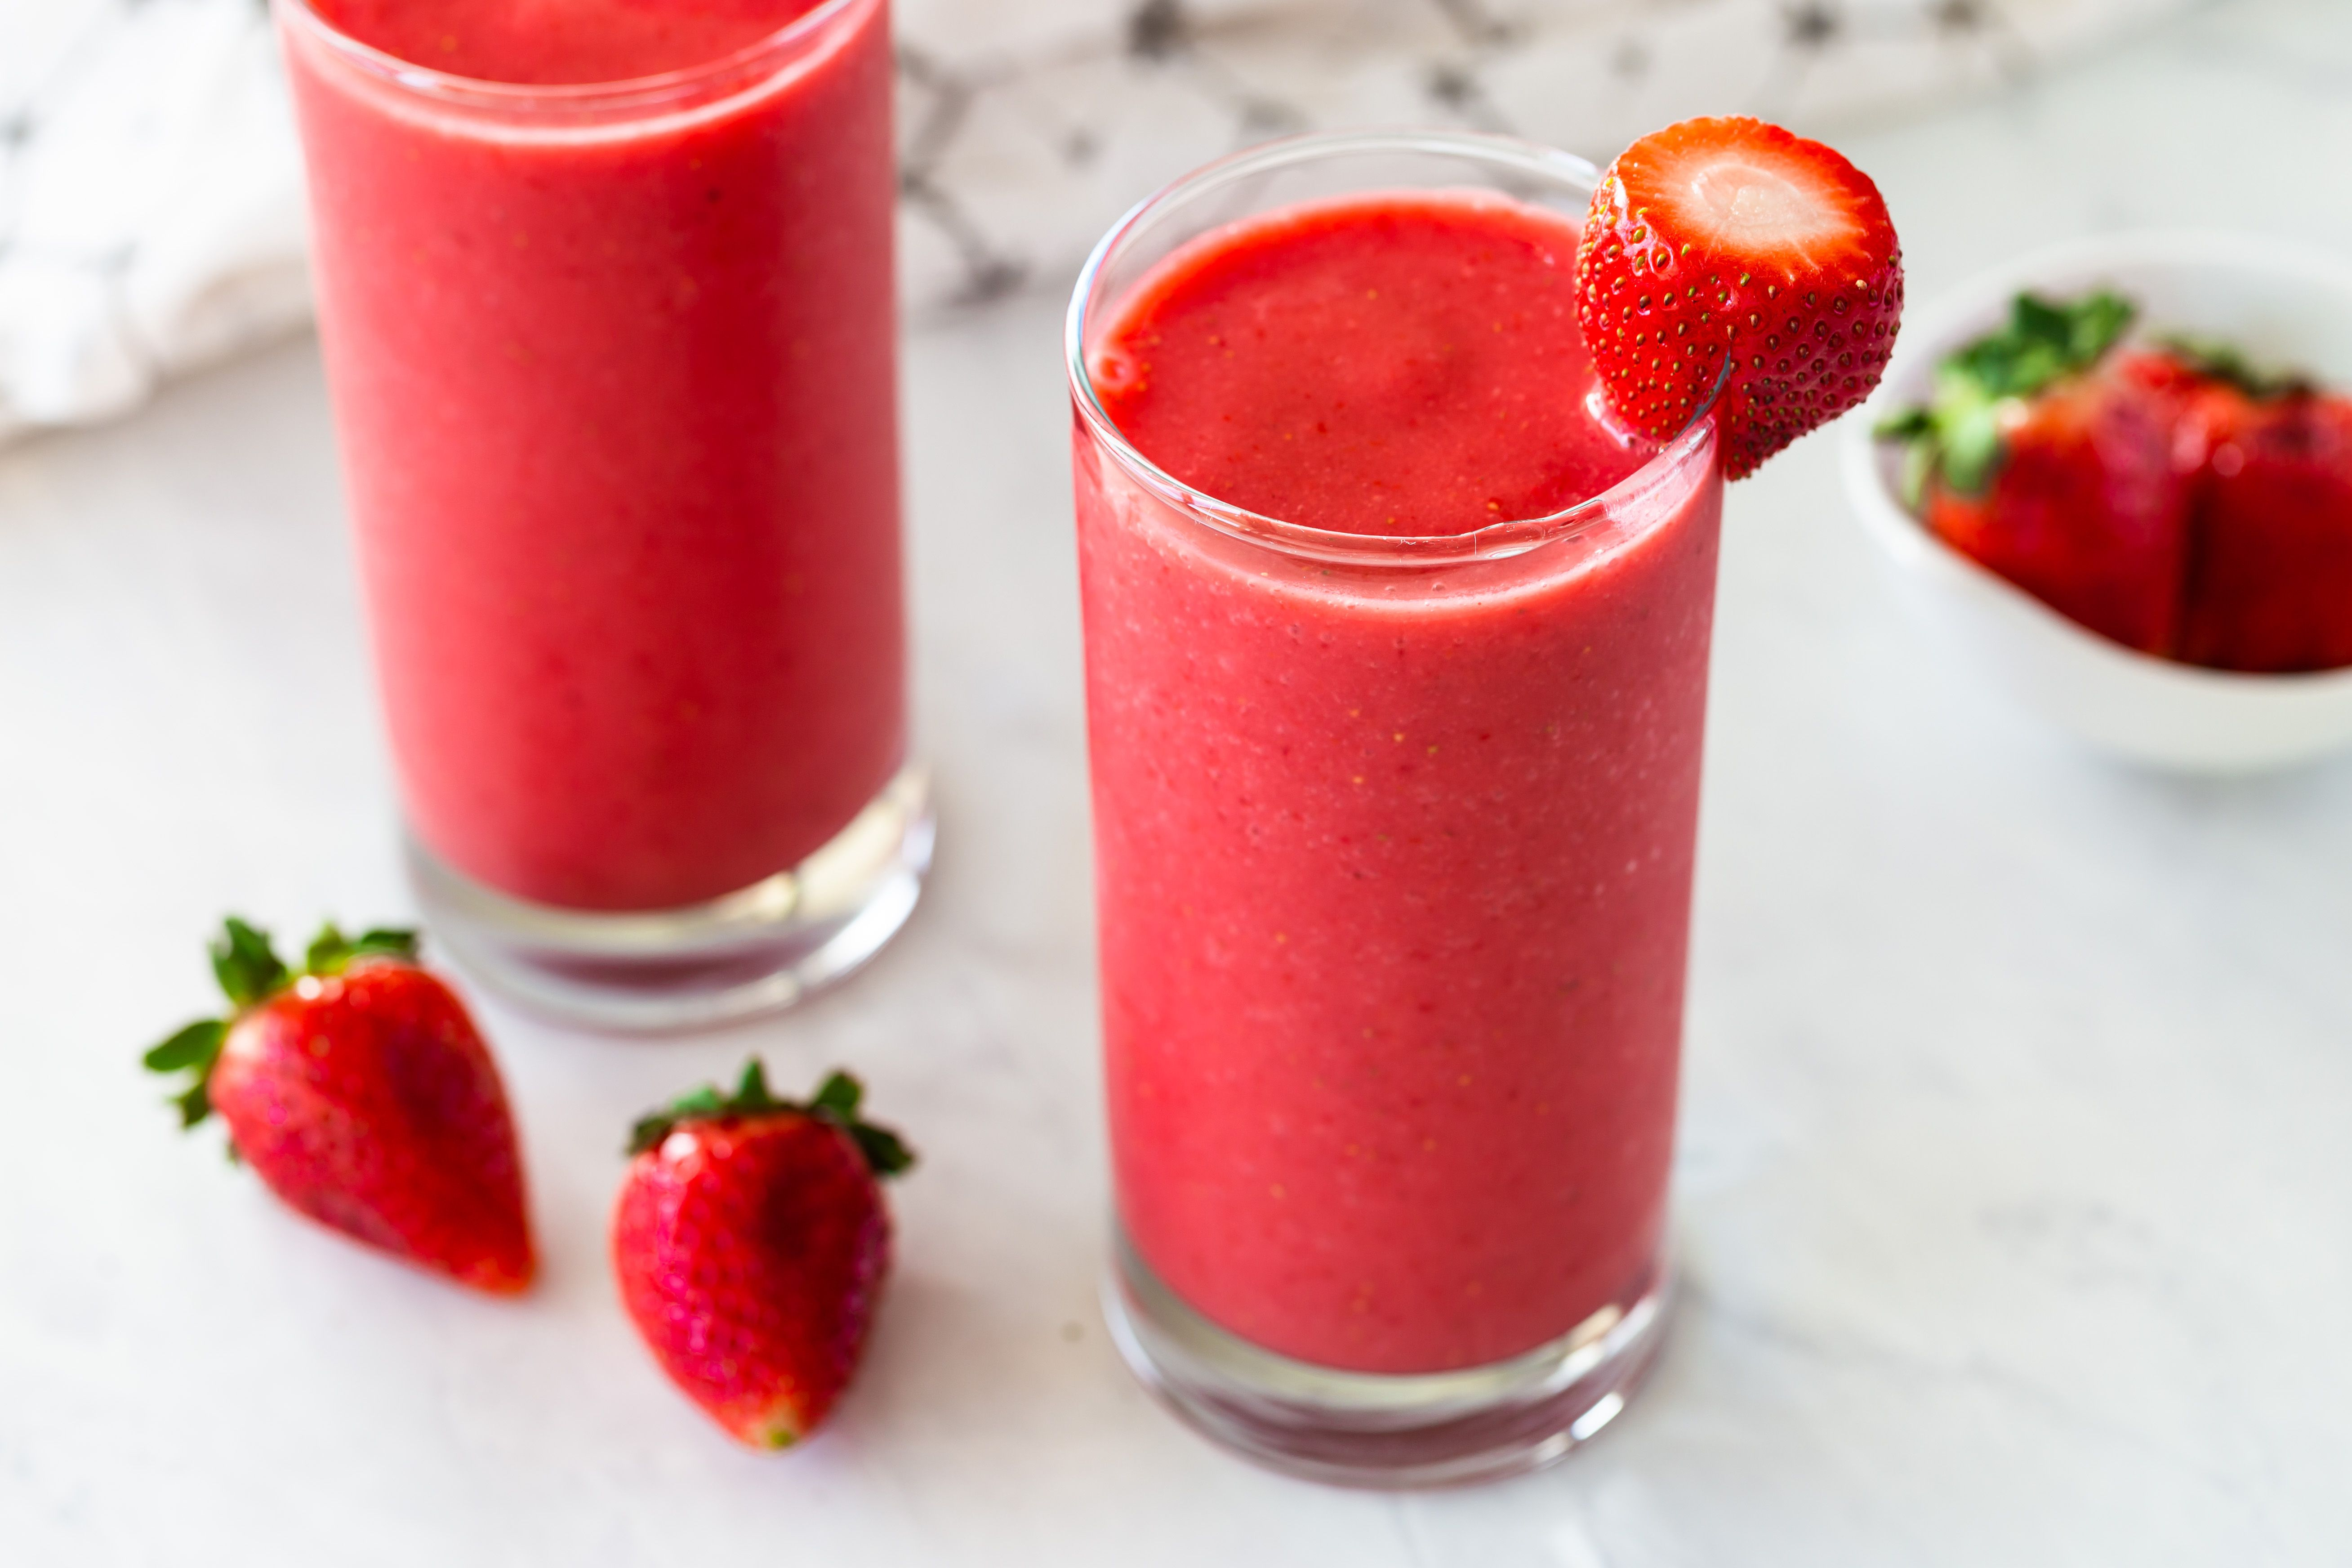 Strawberry smoothies in two glasses garnished with strawberries